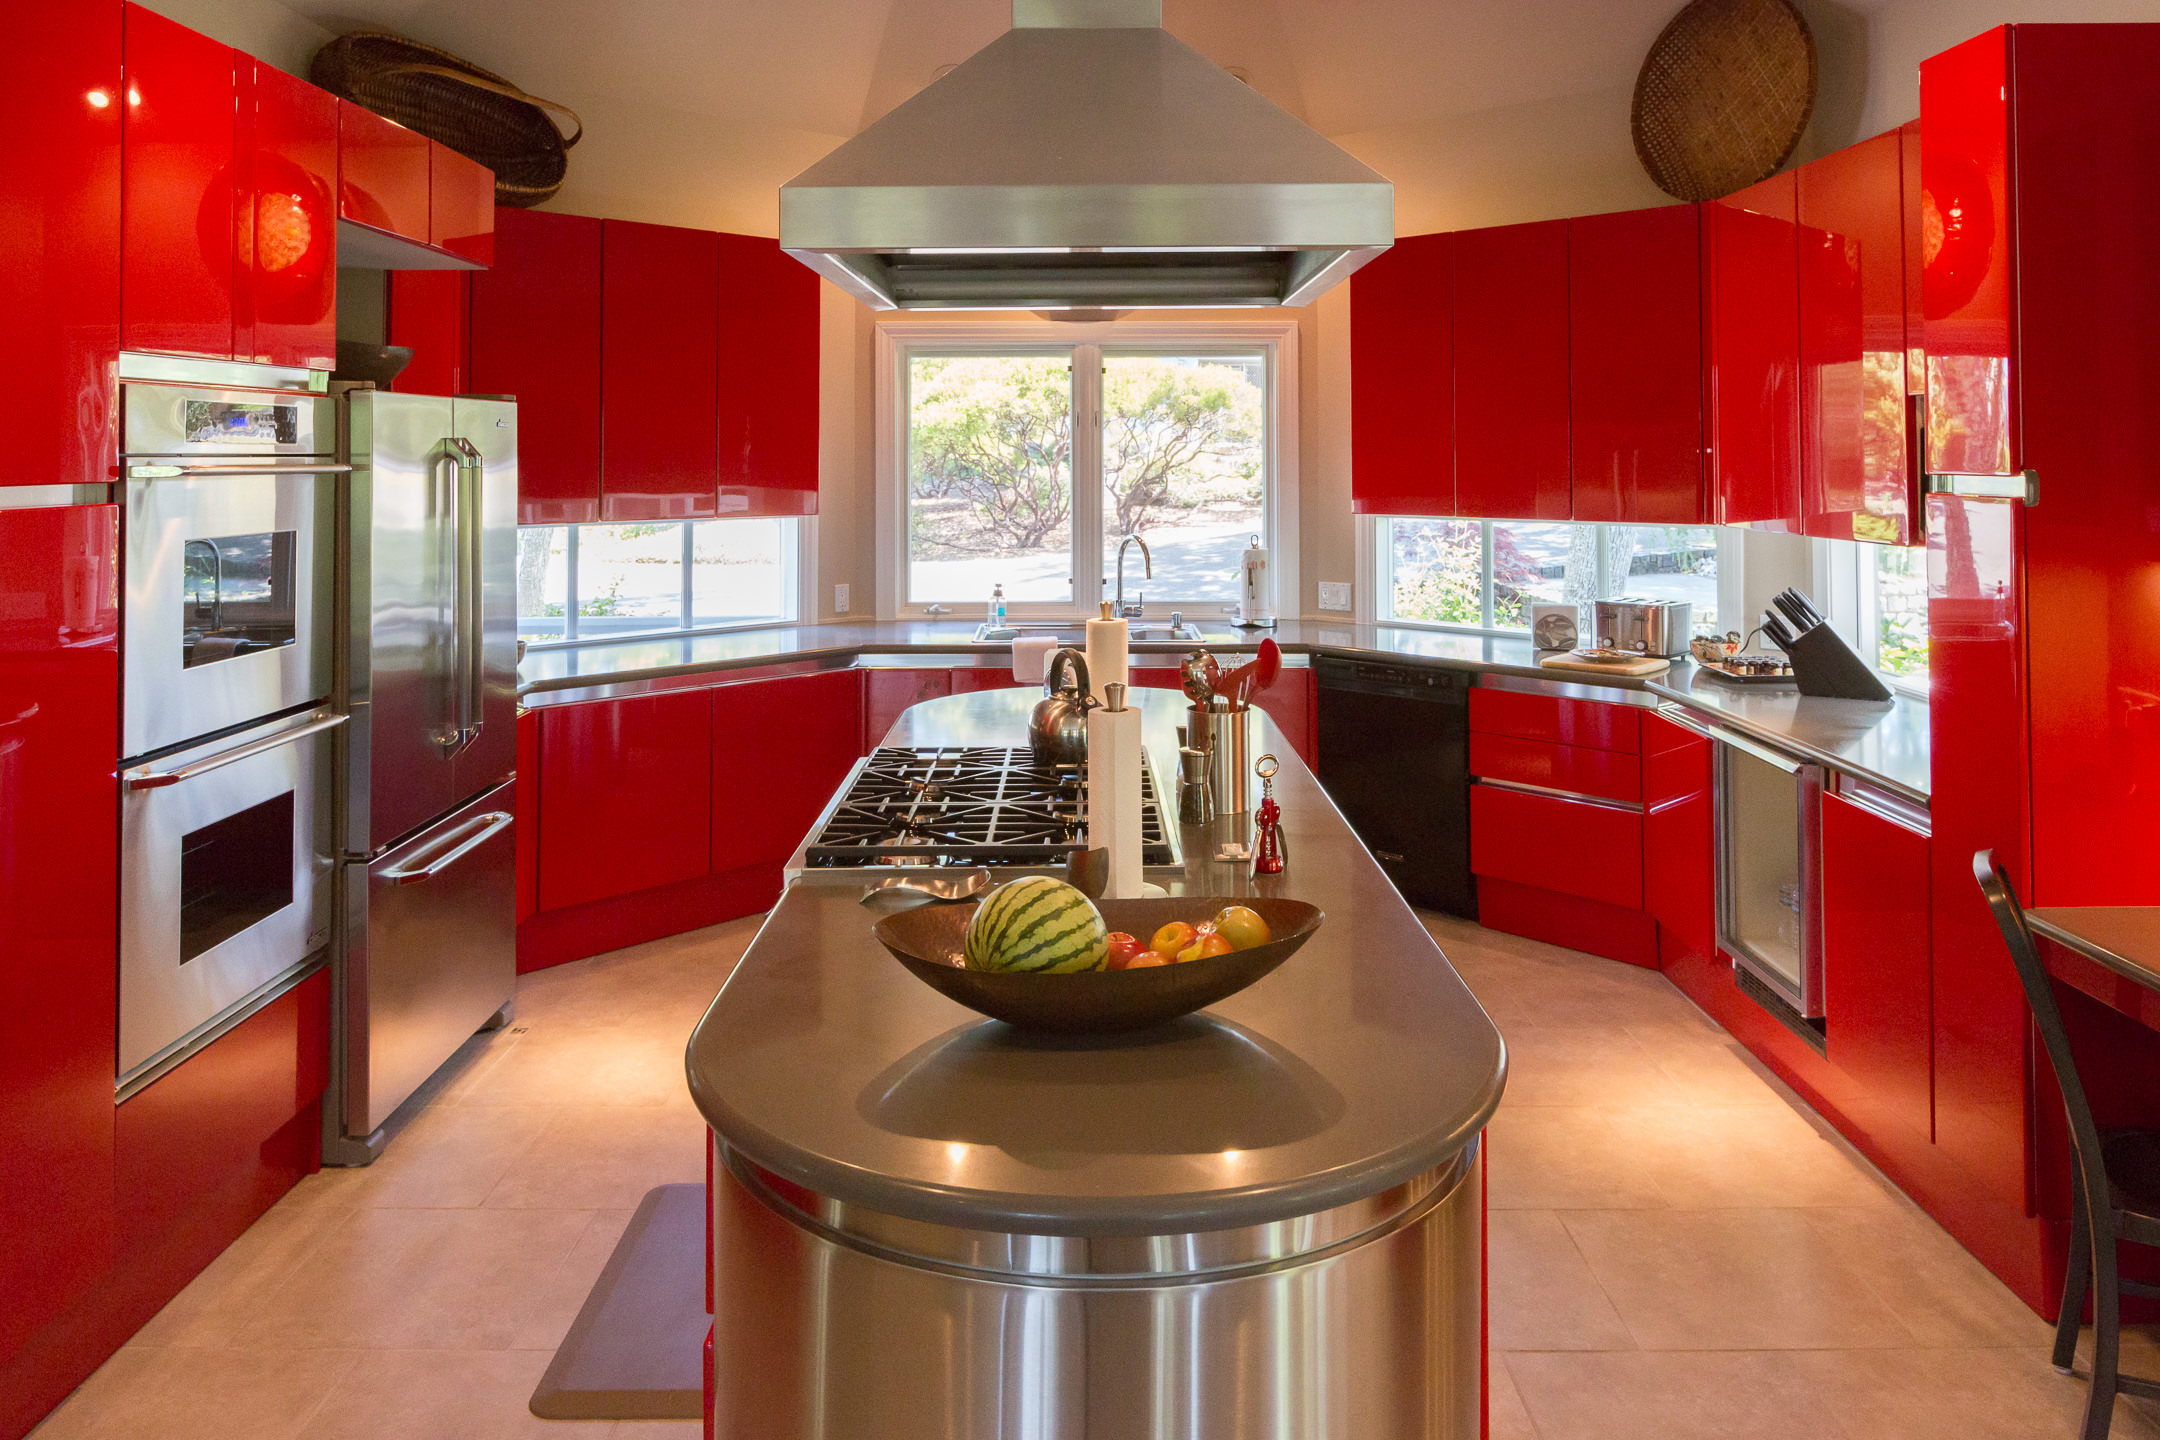 Red Lacquer Kitchen Cabinets Architectural Steve Ruddy Photography